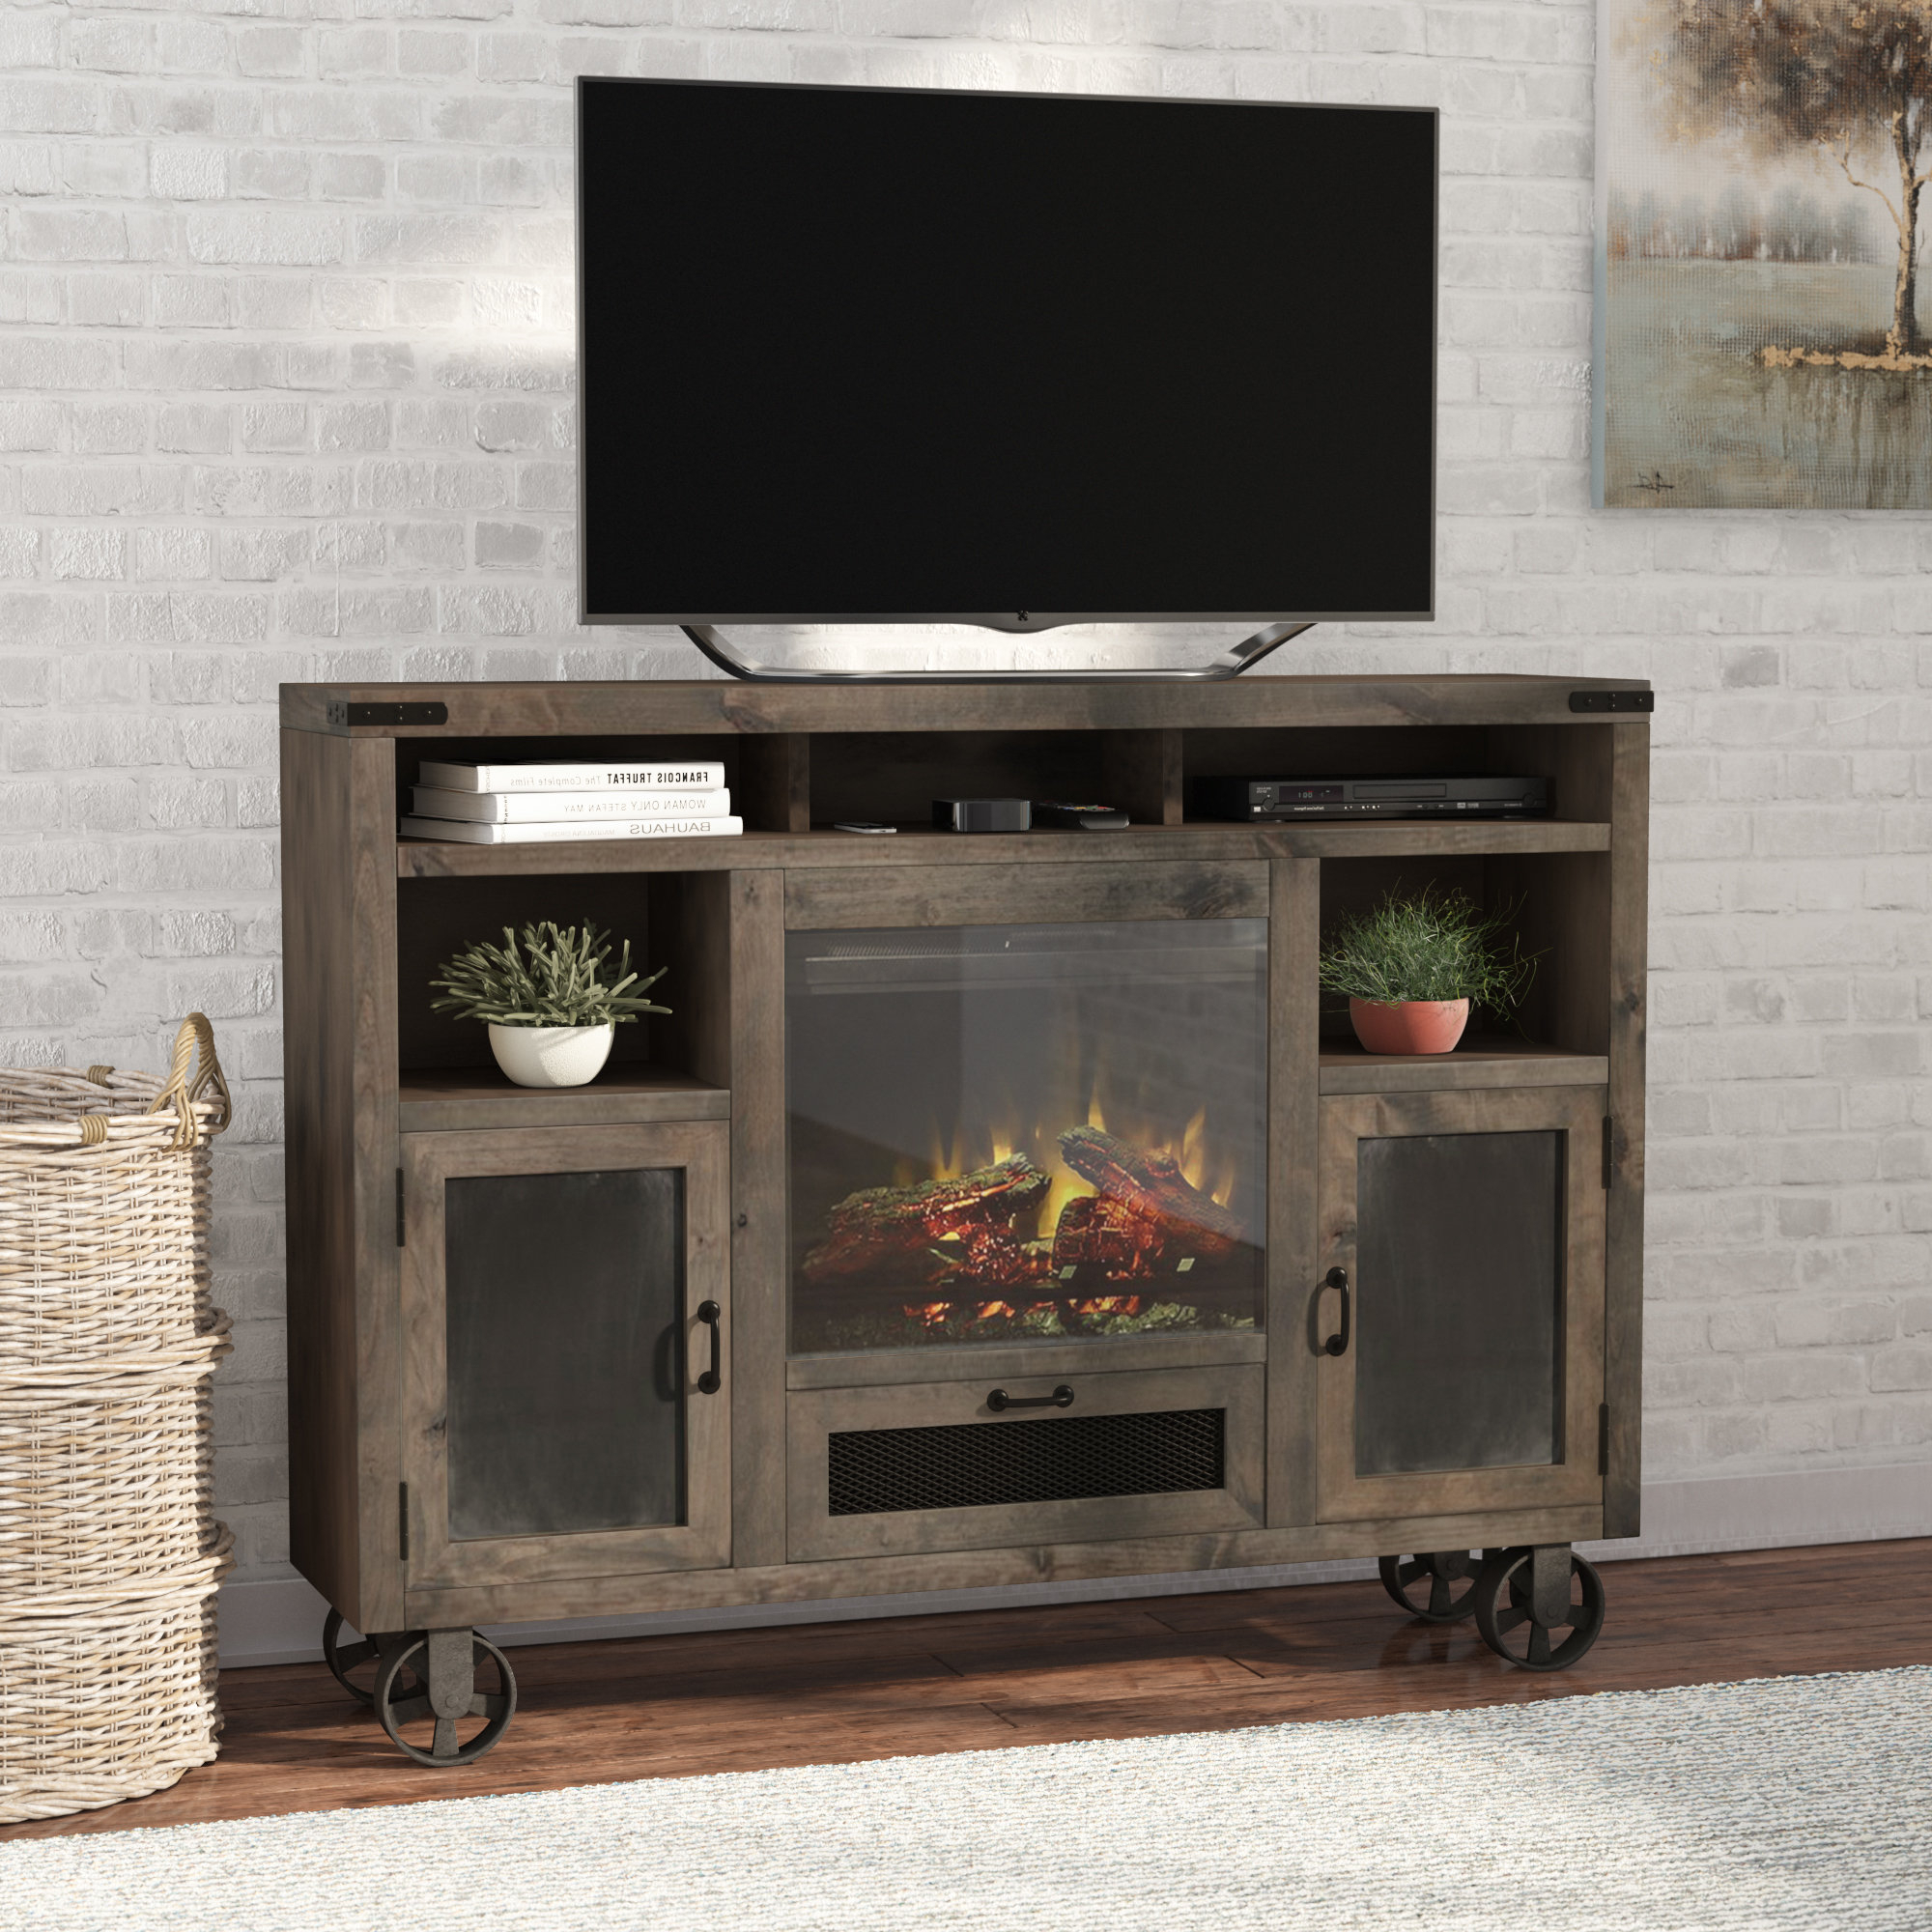 Tall Tv Stands You'll Love | Wayfair Throughout Wyatt 68 Inch Tv Stands (View 2 of 20)